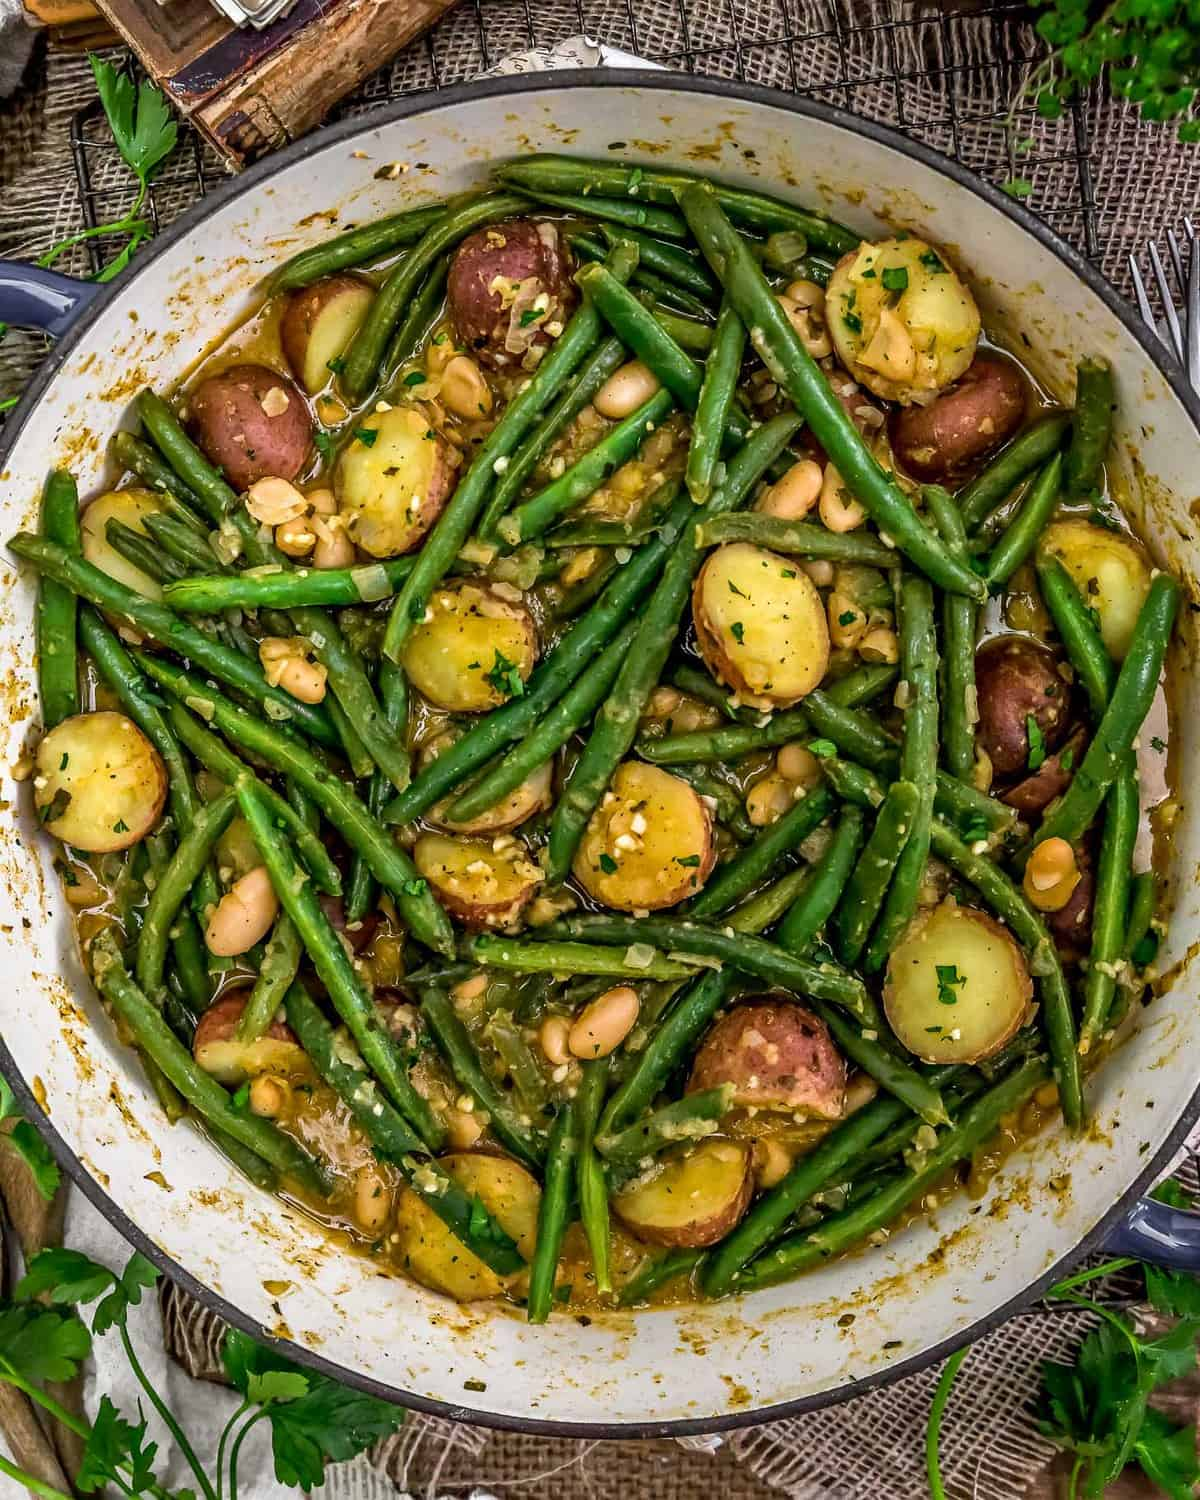 Skillet of Country Ranch Green Beans and Potato